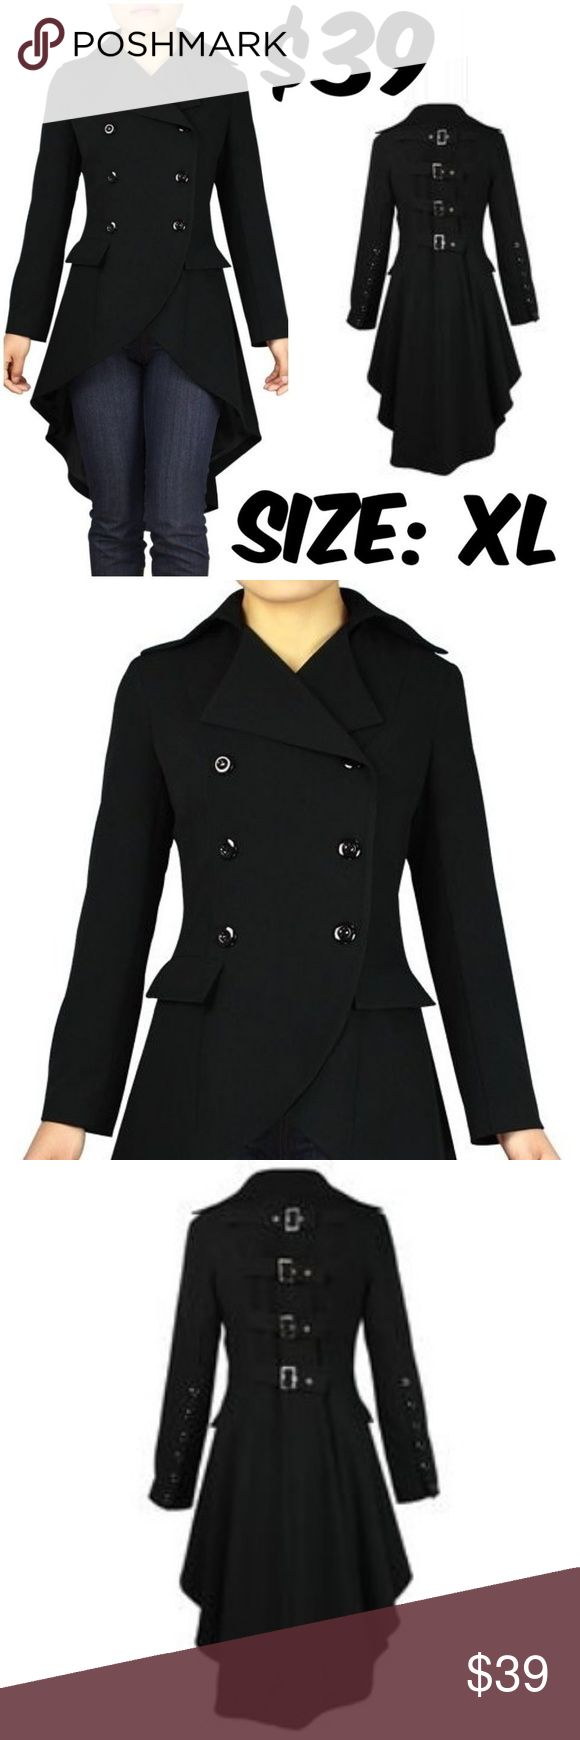 """STEAMPUNK GOTHIC PUNK ROCK BUCKLE COAT JACKET ITEM #191 PRICE: $39 BUST: 40"""" WAIST: 32"""" CONDITION: NEW Jackets & Coats"""